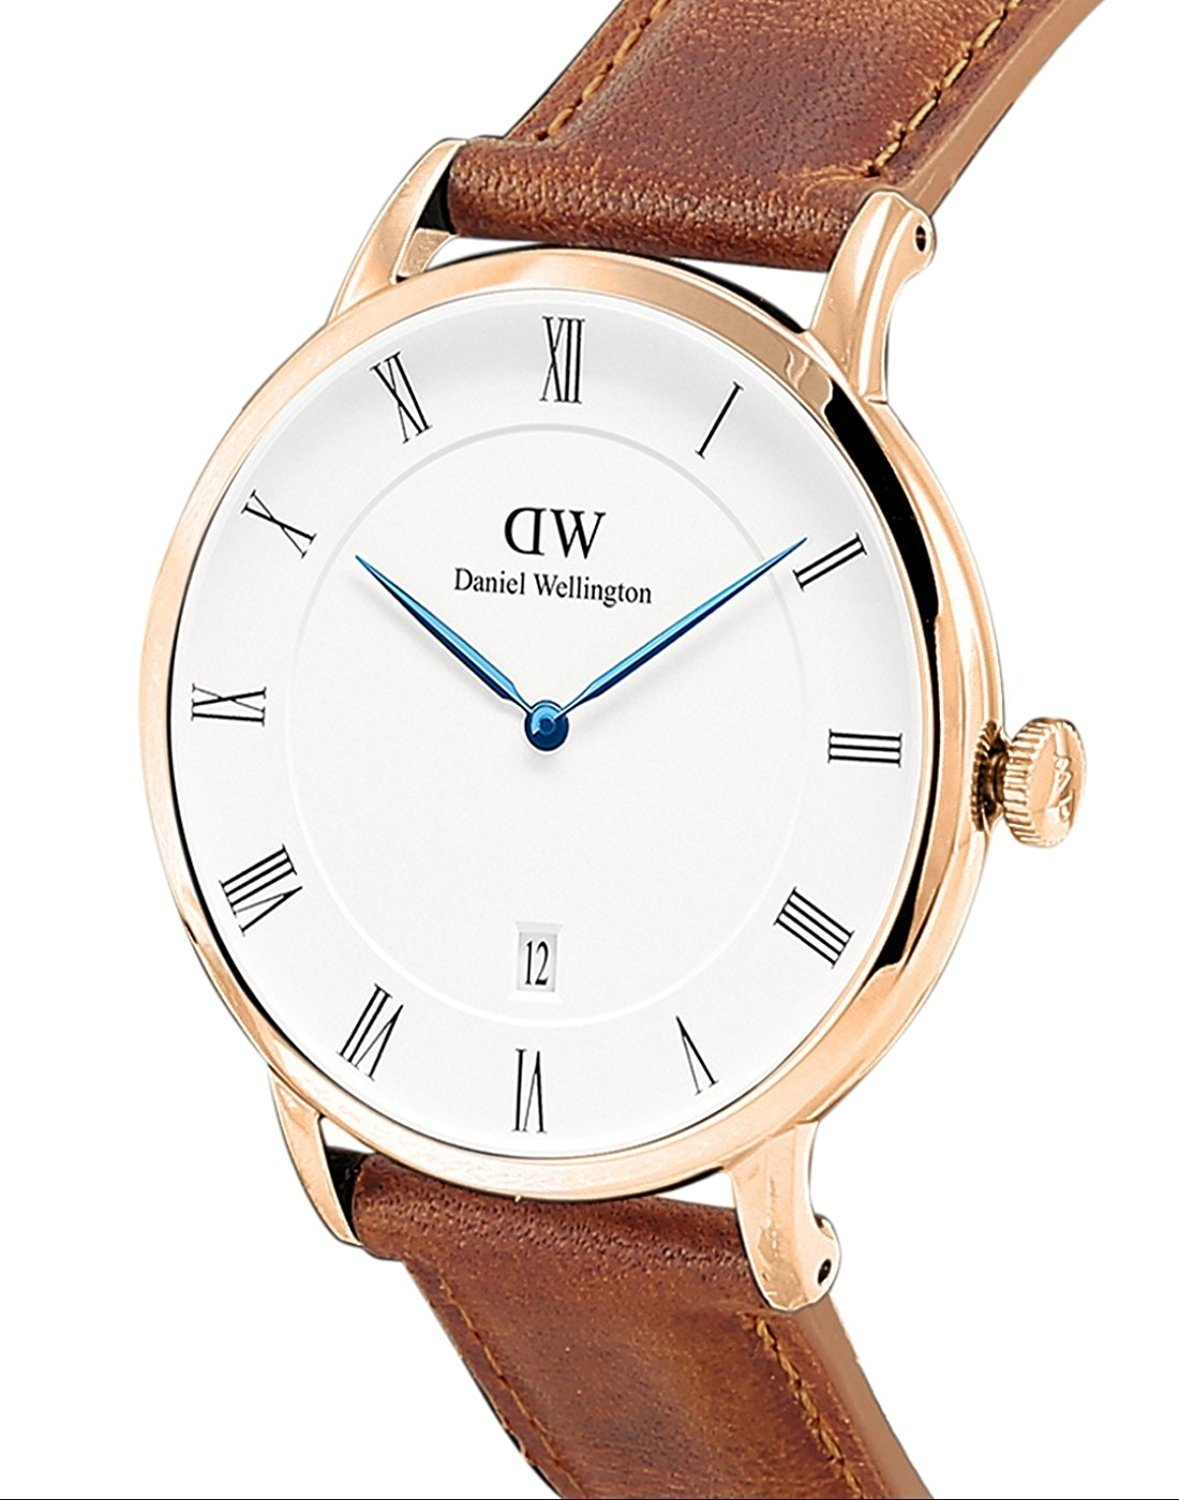 Which daniel wellington wristwatches are popular among ebay shoppers?